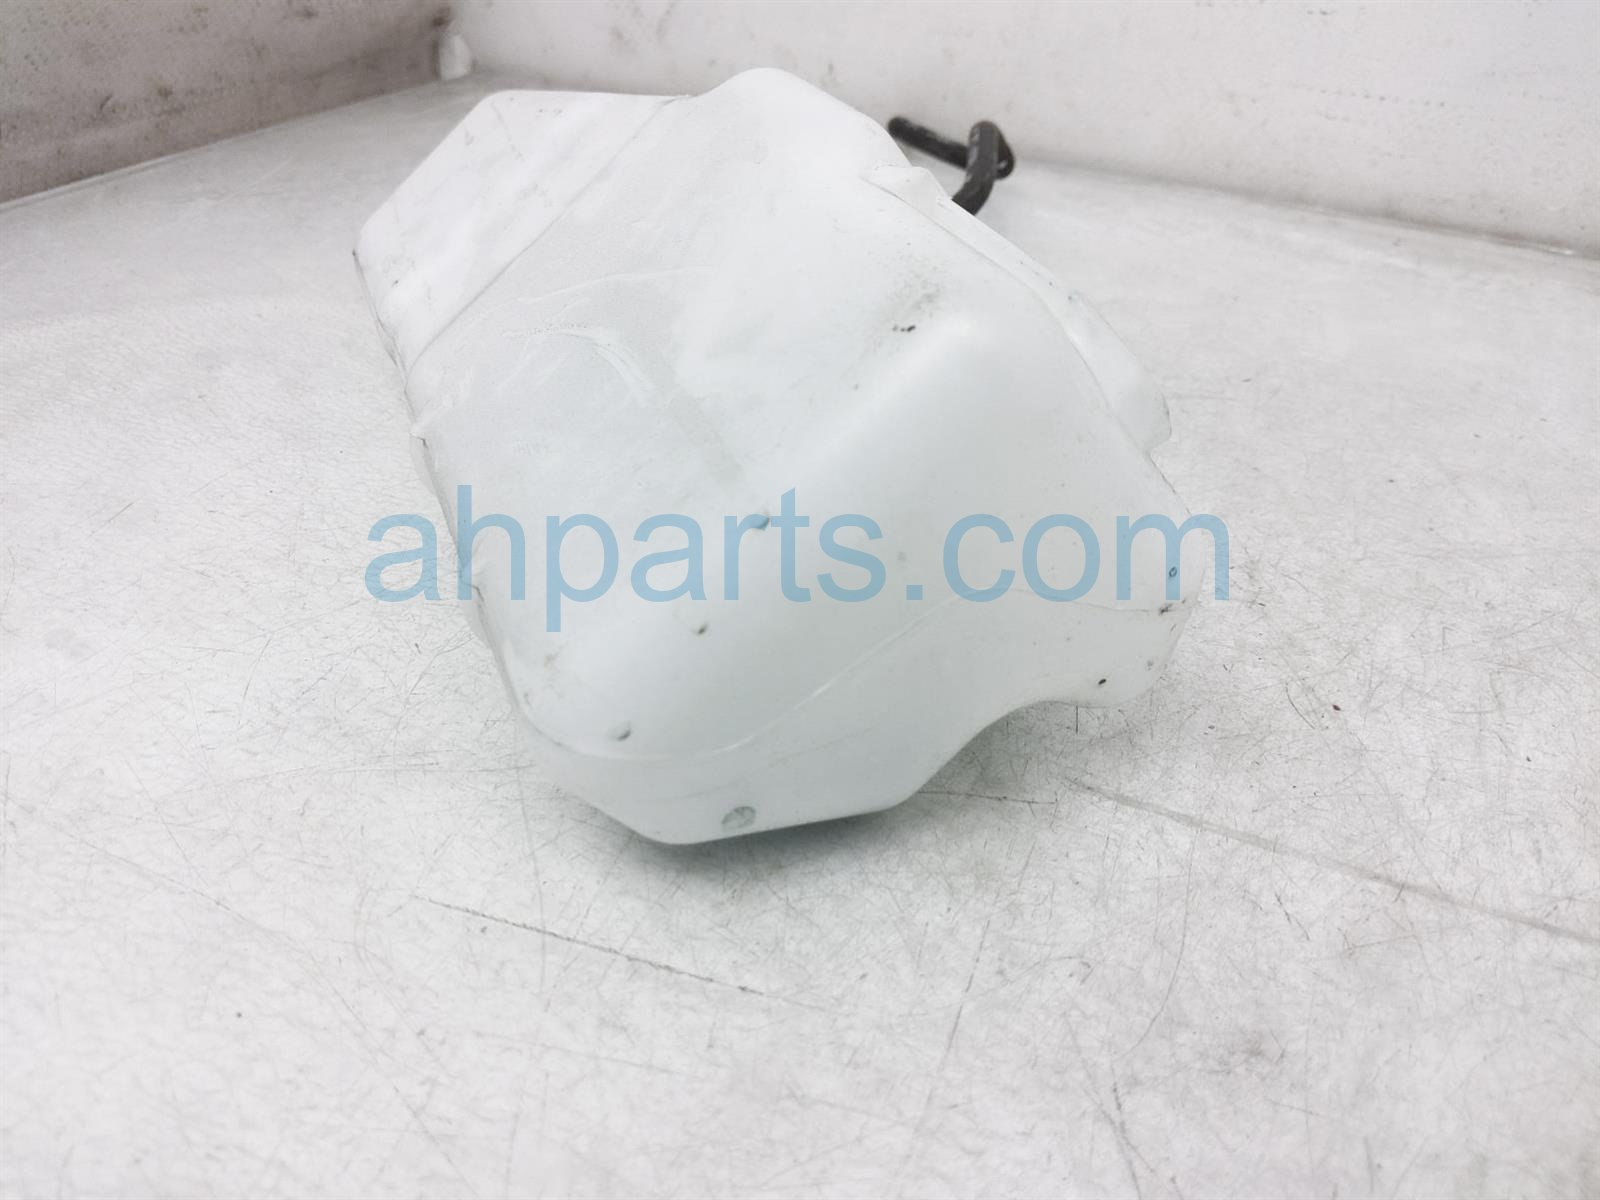 Sold 2019 Honda Pilot Radiator Coolant Reservoir 19101 RLV A00 Replacement